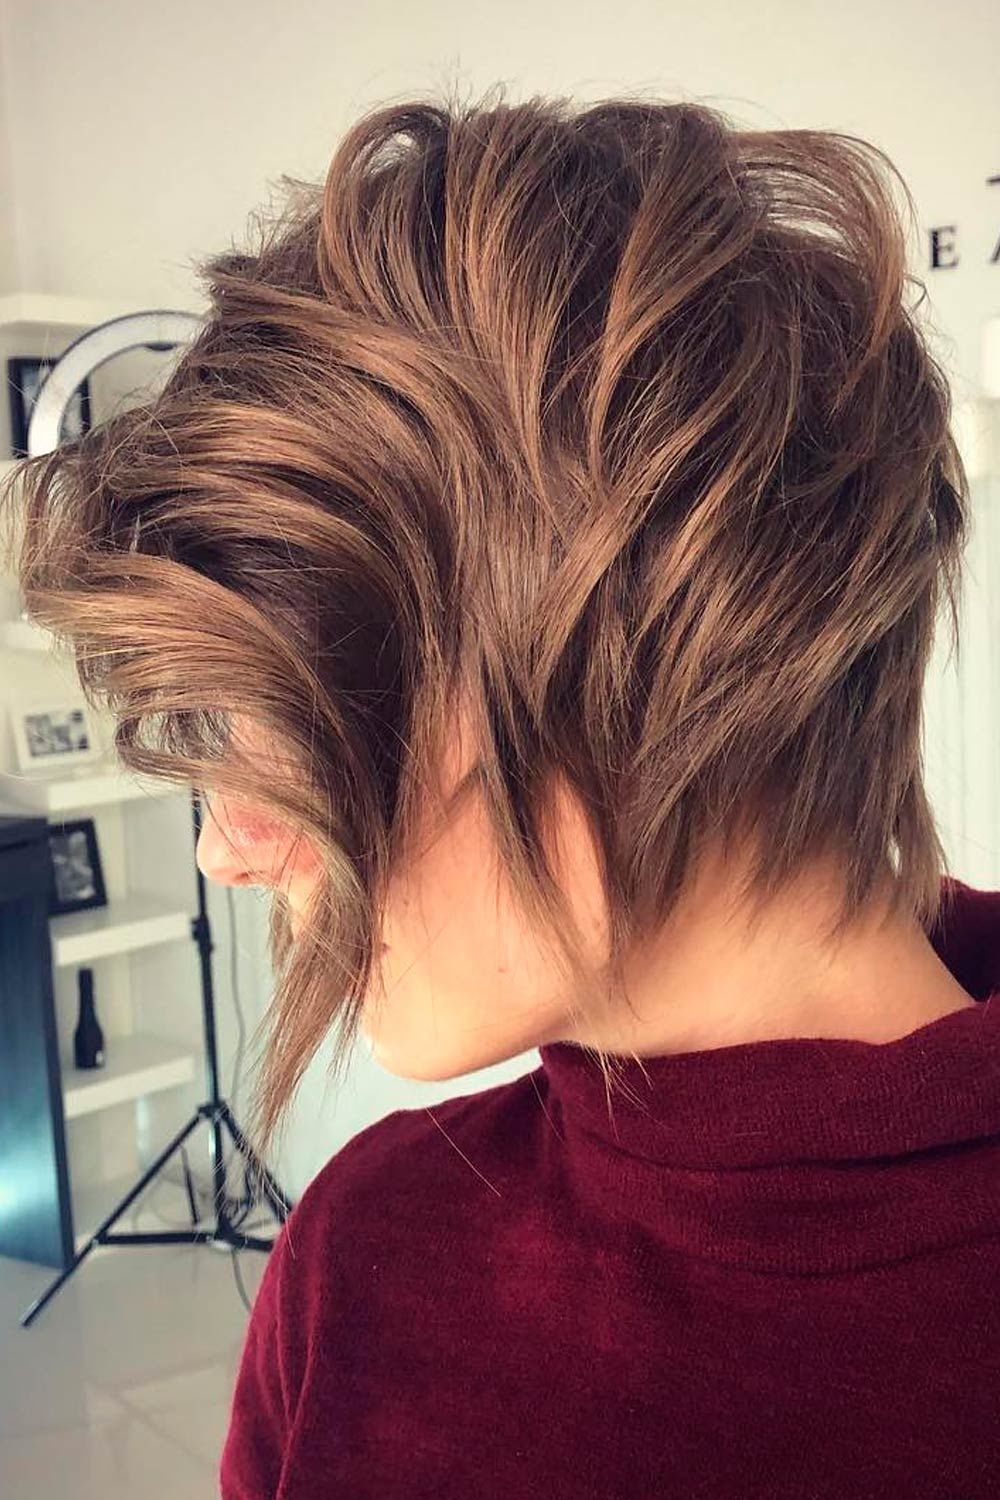 Wavy Layered Short Hairstyles For Round Faces, short choppy hairstyles for round faces, short hairstyles for older round faces, short layered hairstyles for round faces,